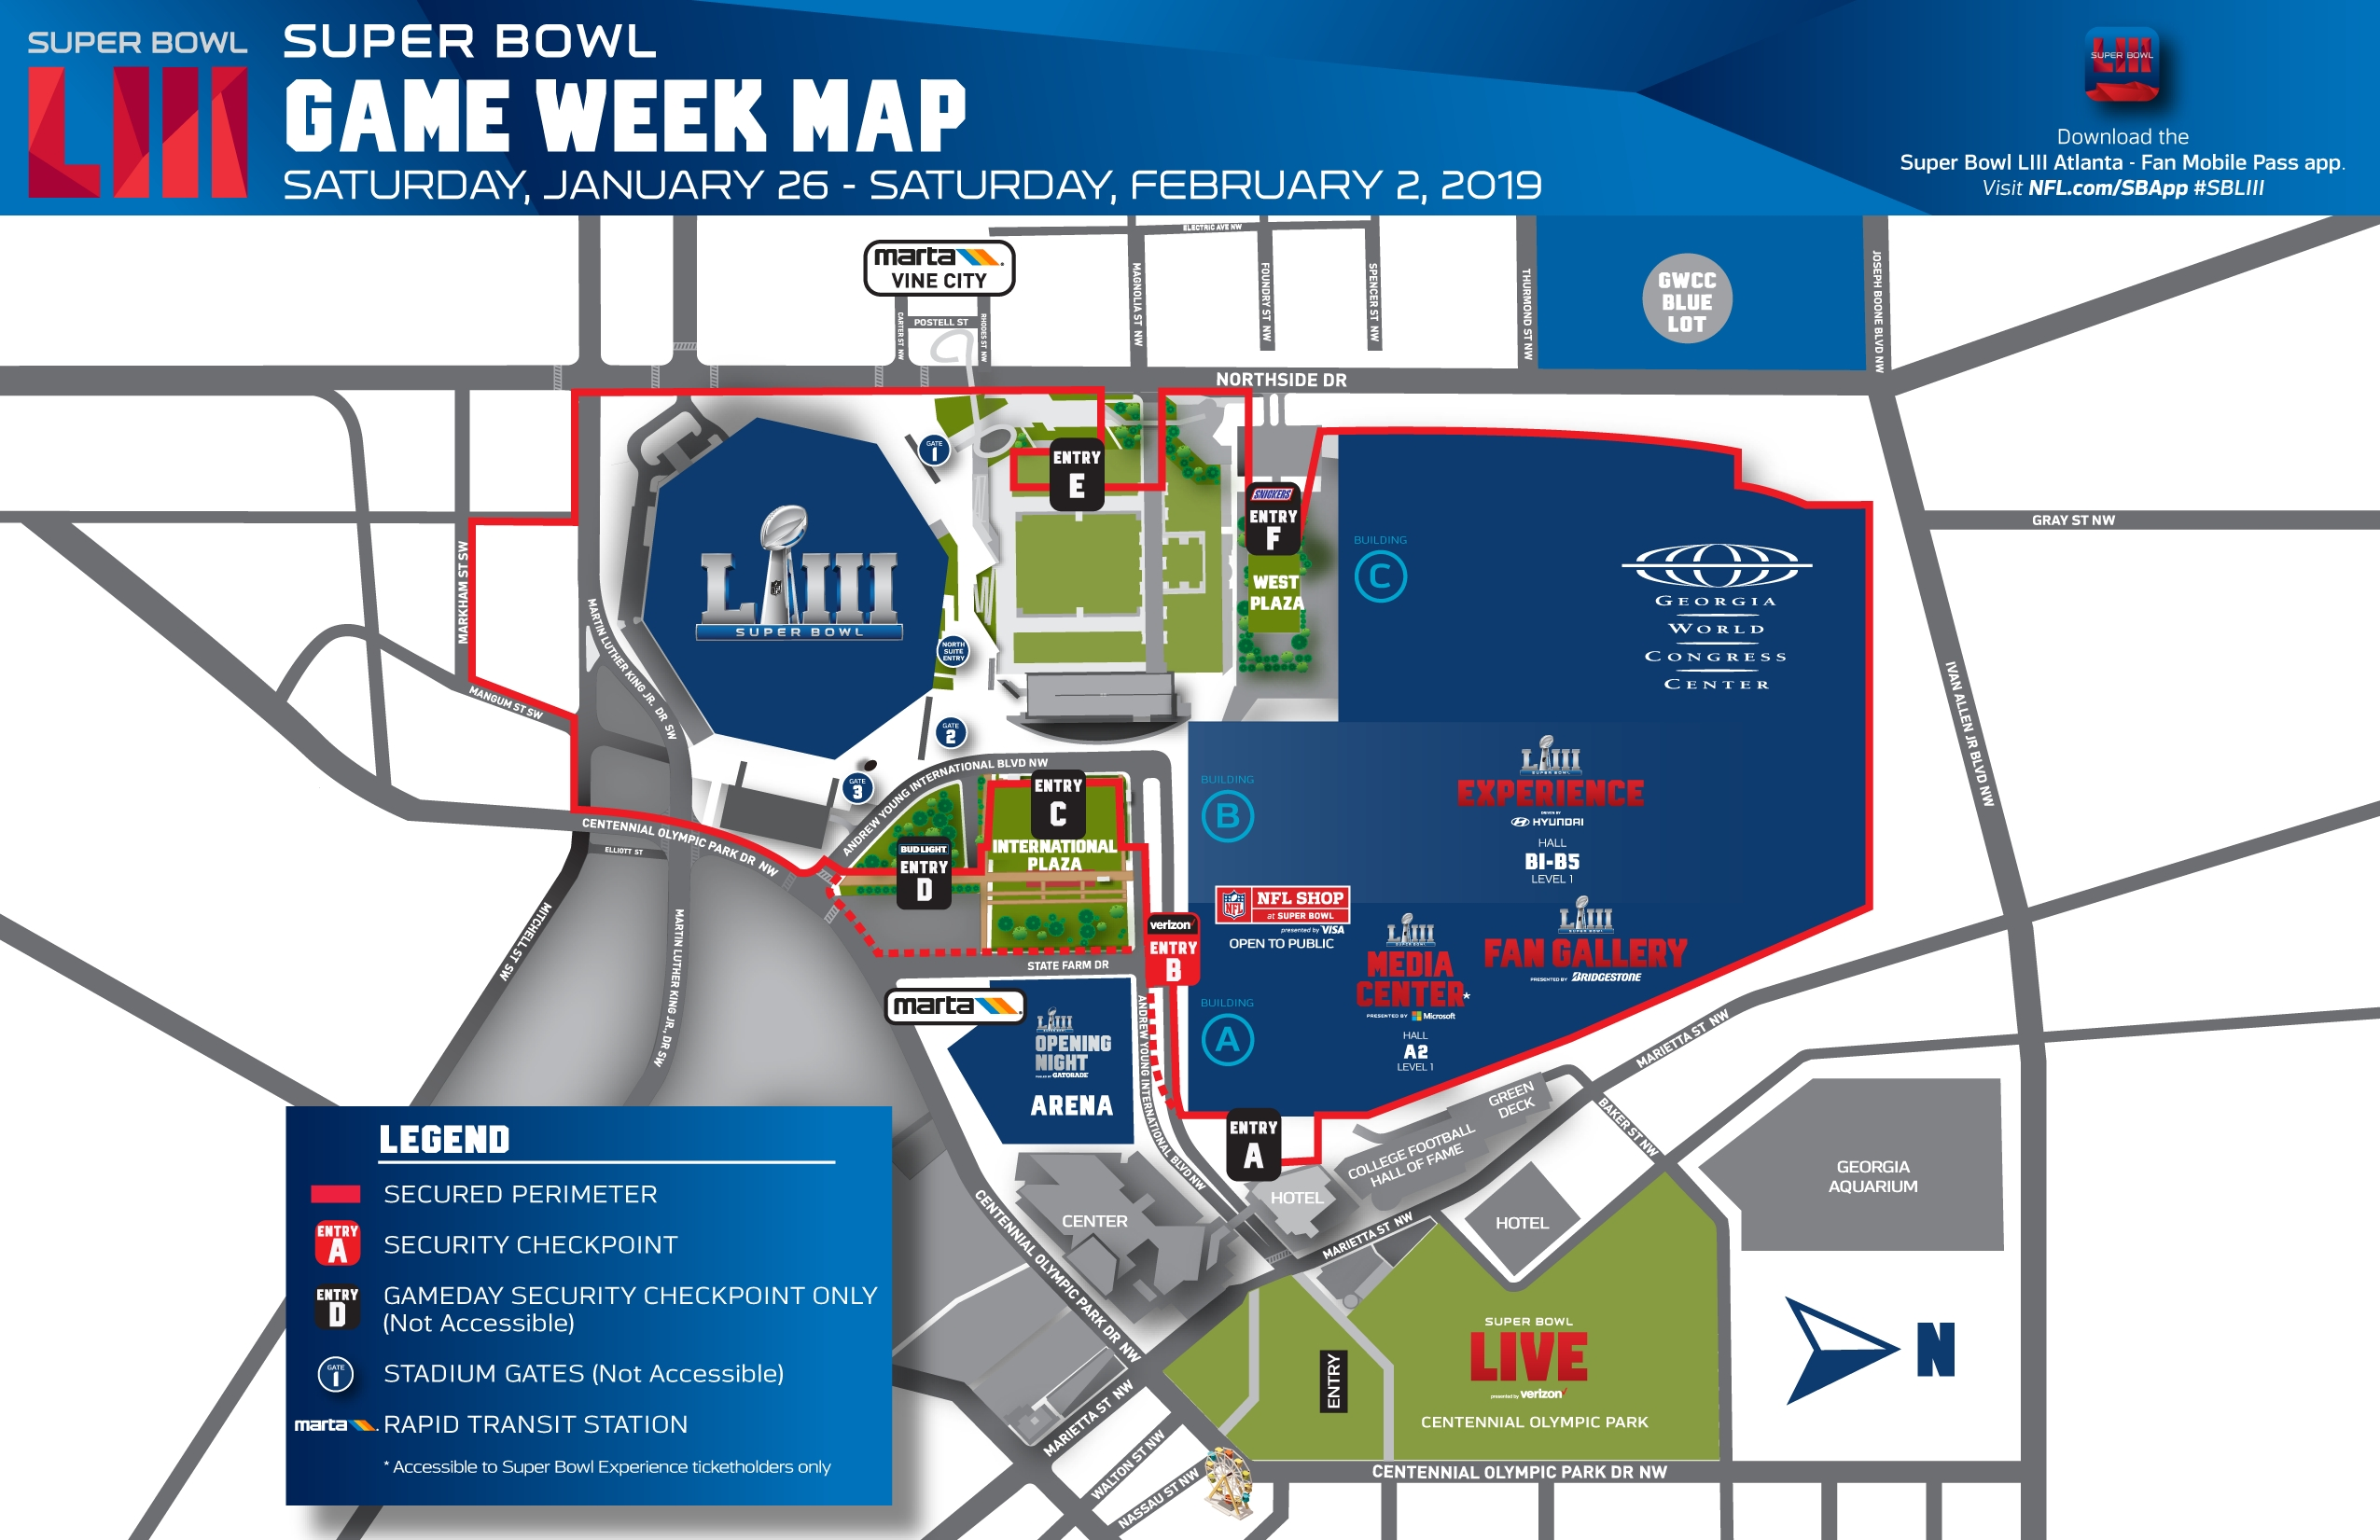 Super Bowl Experience | Nfl | Nfl intended for Super Bowl Support Map 2019